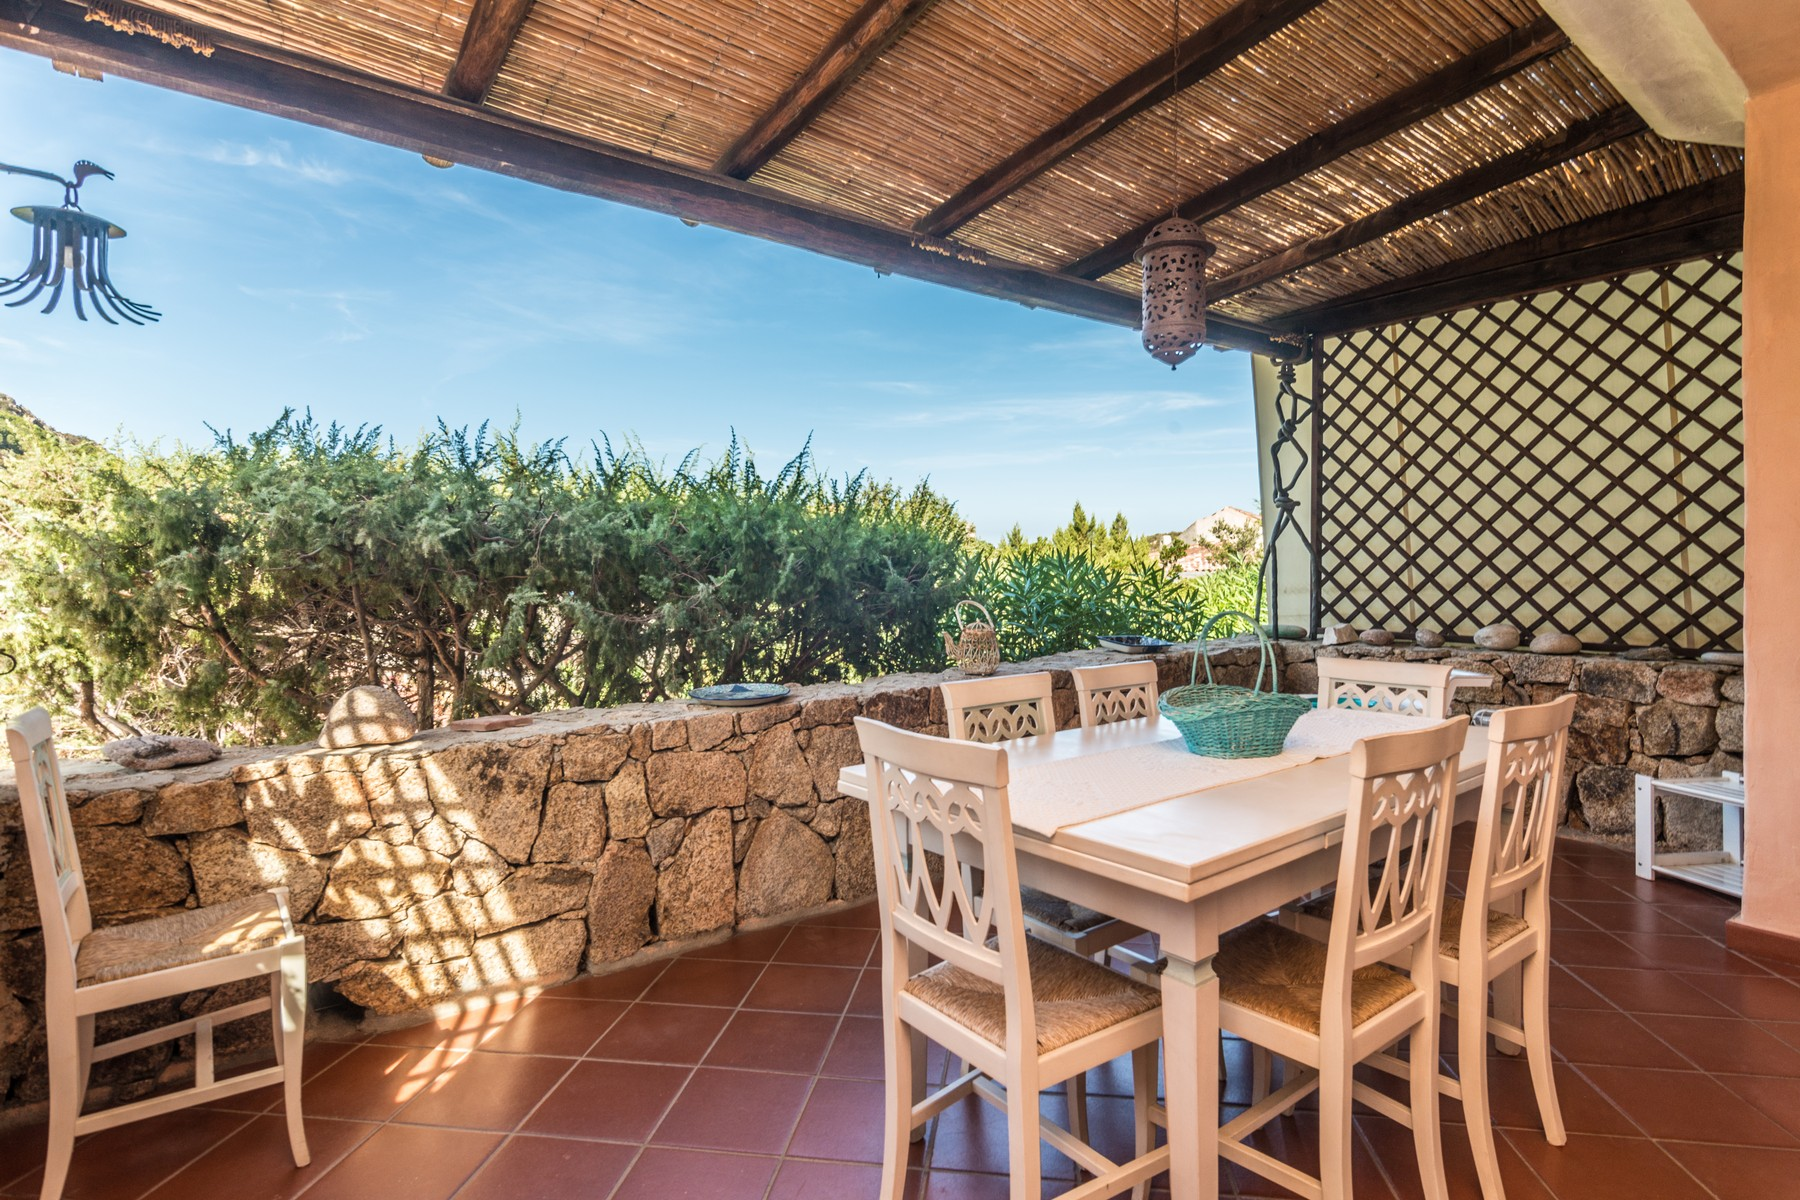 Apartment for Sale at Beautiful apartment in residence with sea view Porto Cervo Porto Cervo, Olbia Tempio 07020 Italy